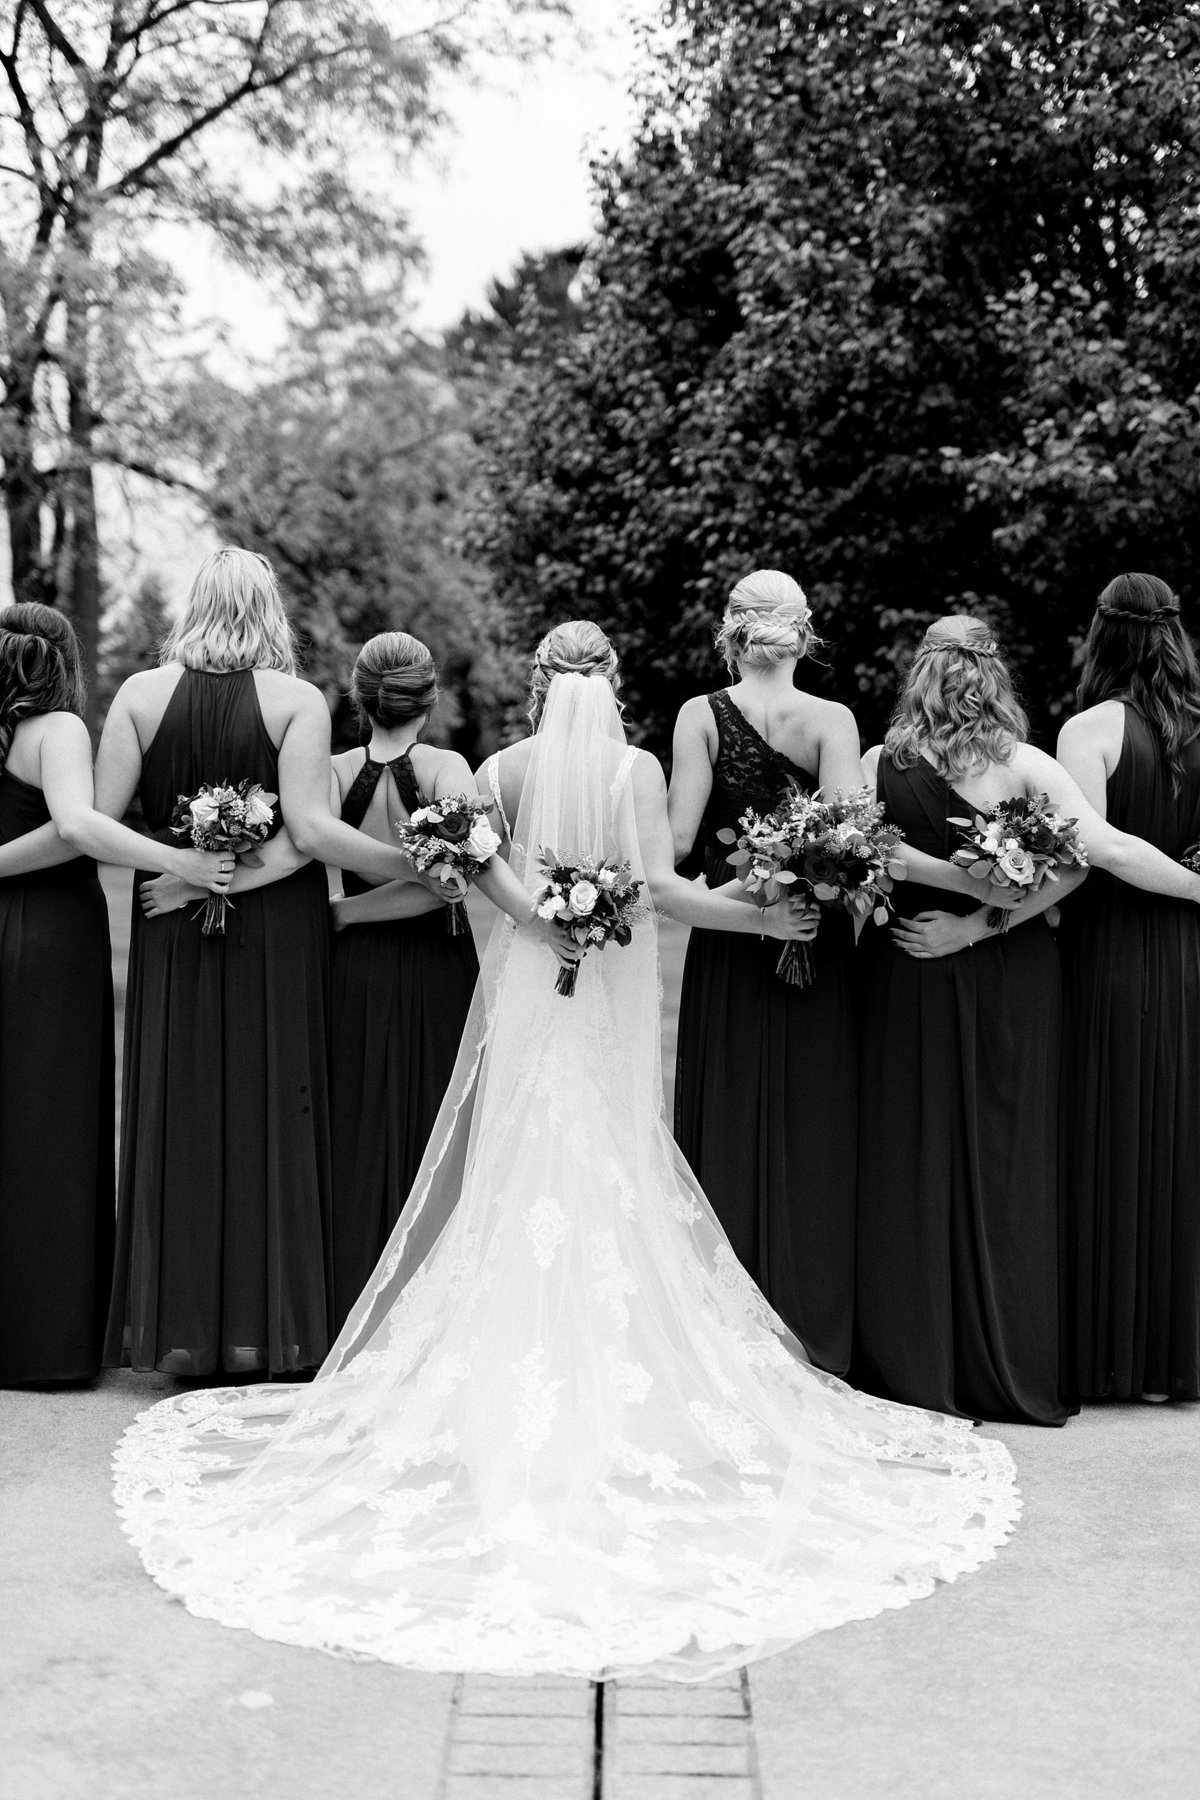 Jordan-Ben-Pine-Knob-Mansion-Clarkston-Michigan-Wedding-Breanne-Rochelle-Photography69